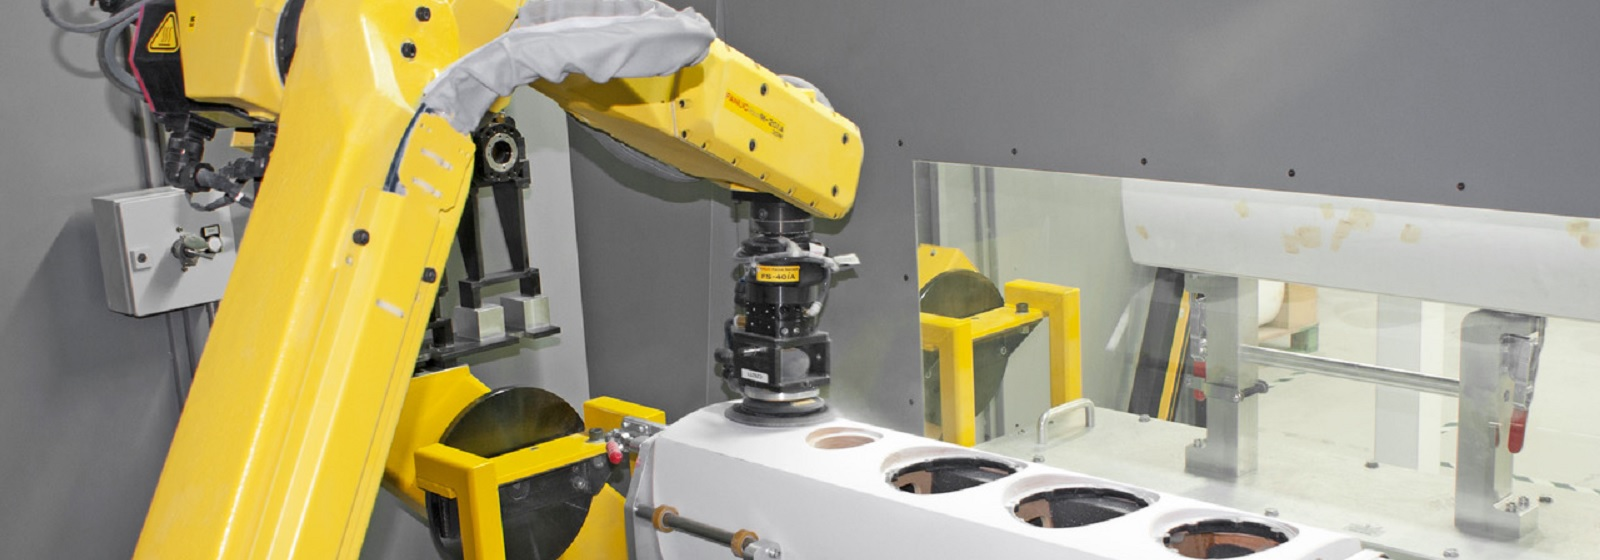 Robot polishing surfaces of speaker cabinets